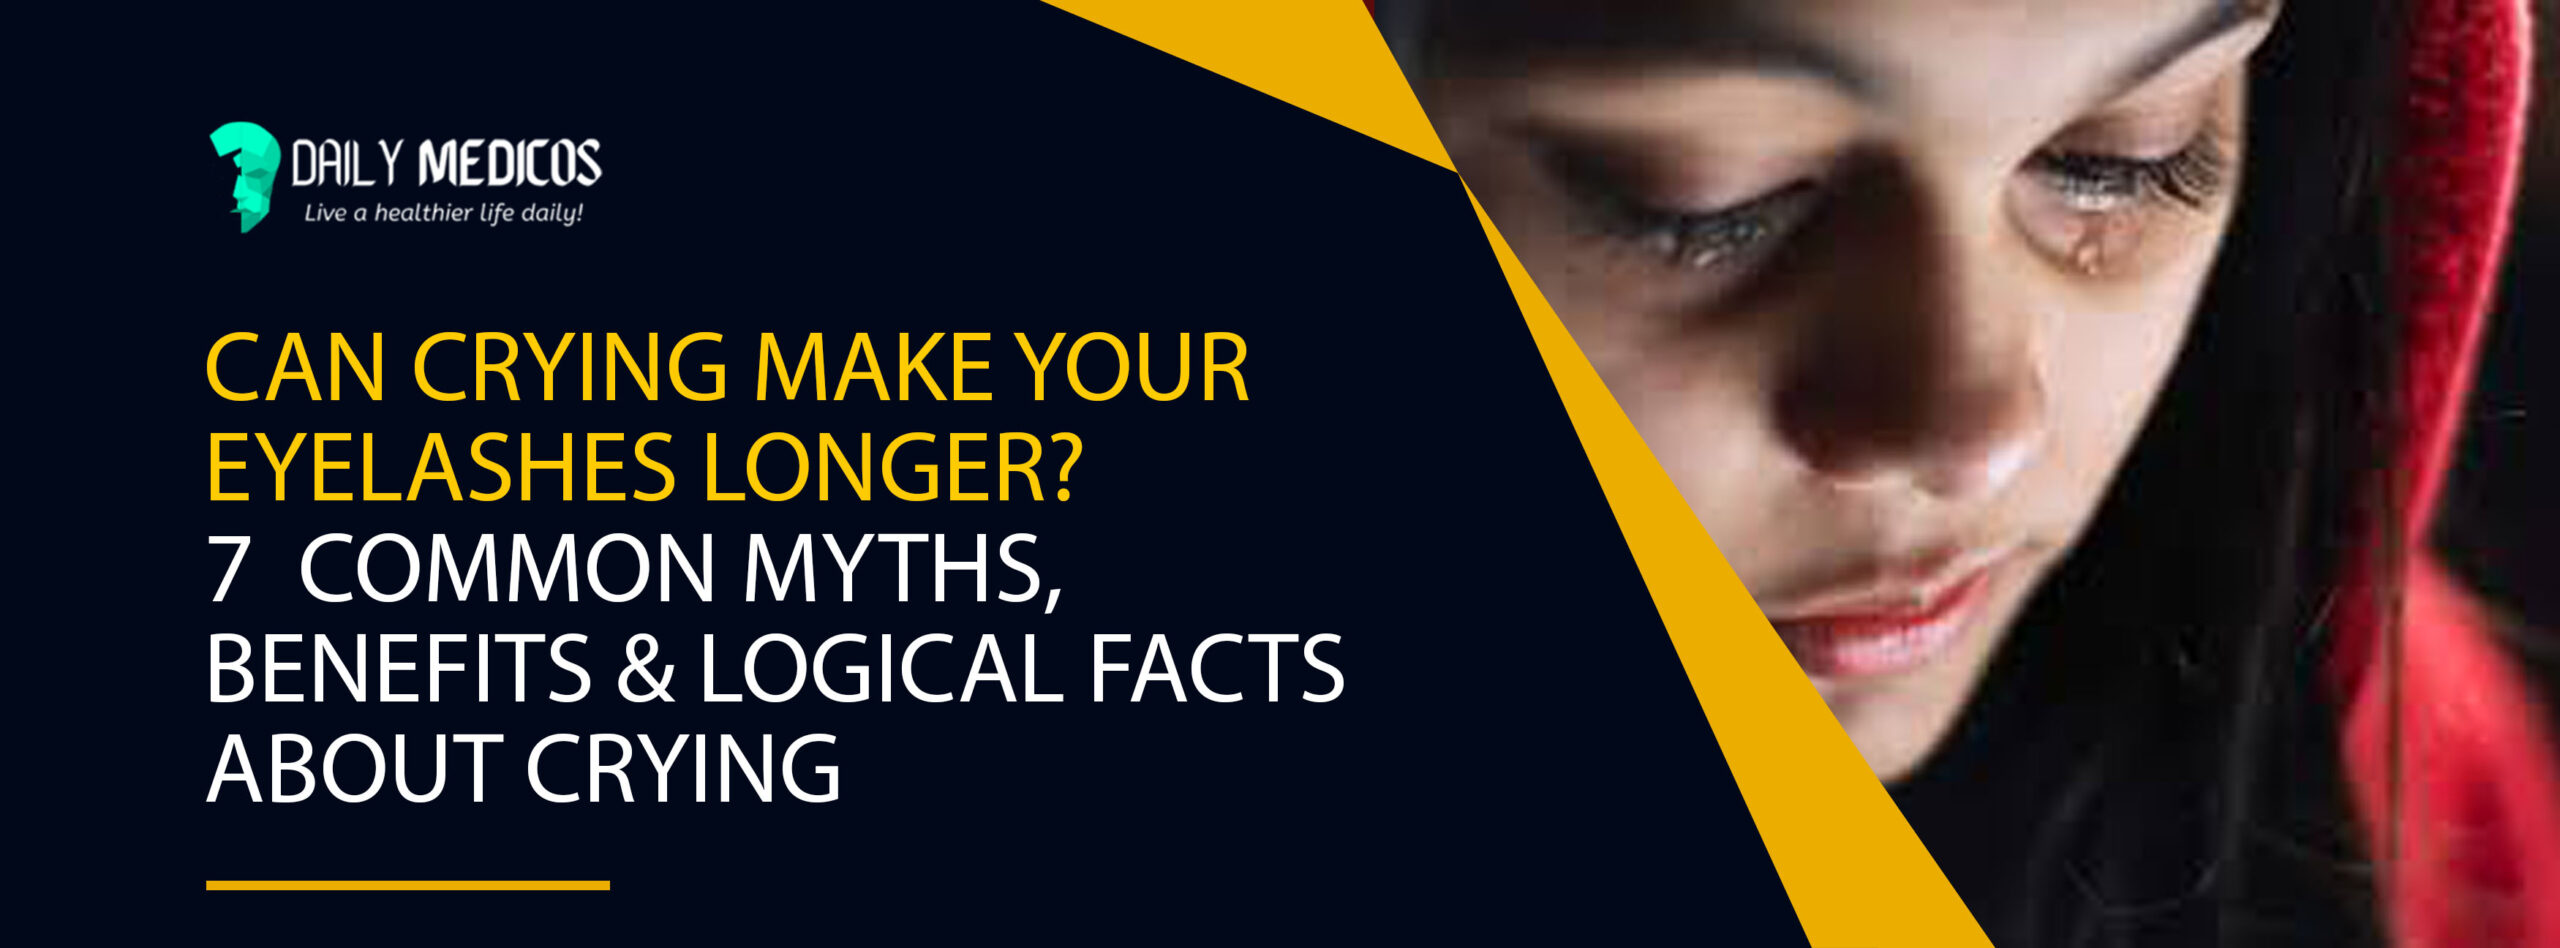 Can Crying Make Your Eyelashes Longer? 7 Common Myths, Benefits & Logical Facts About Crying 1 - Daily Medicos